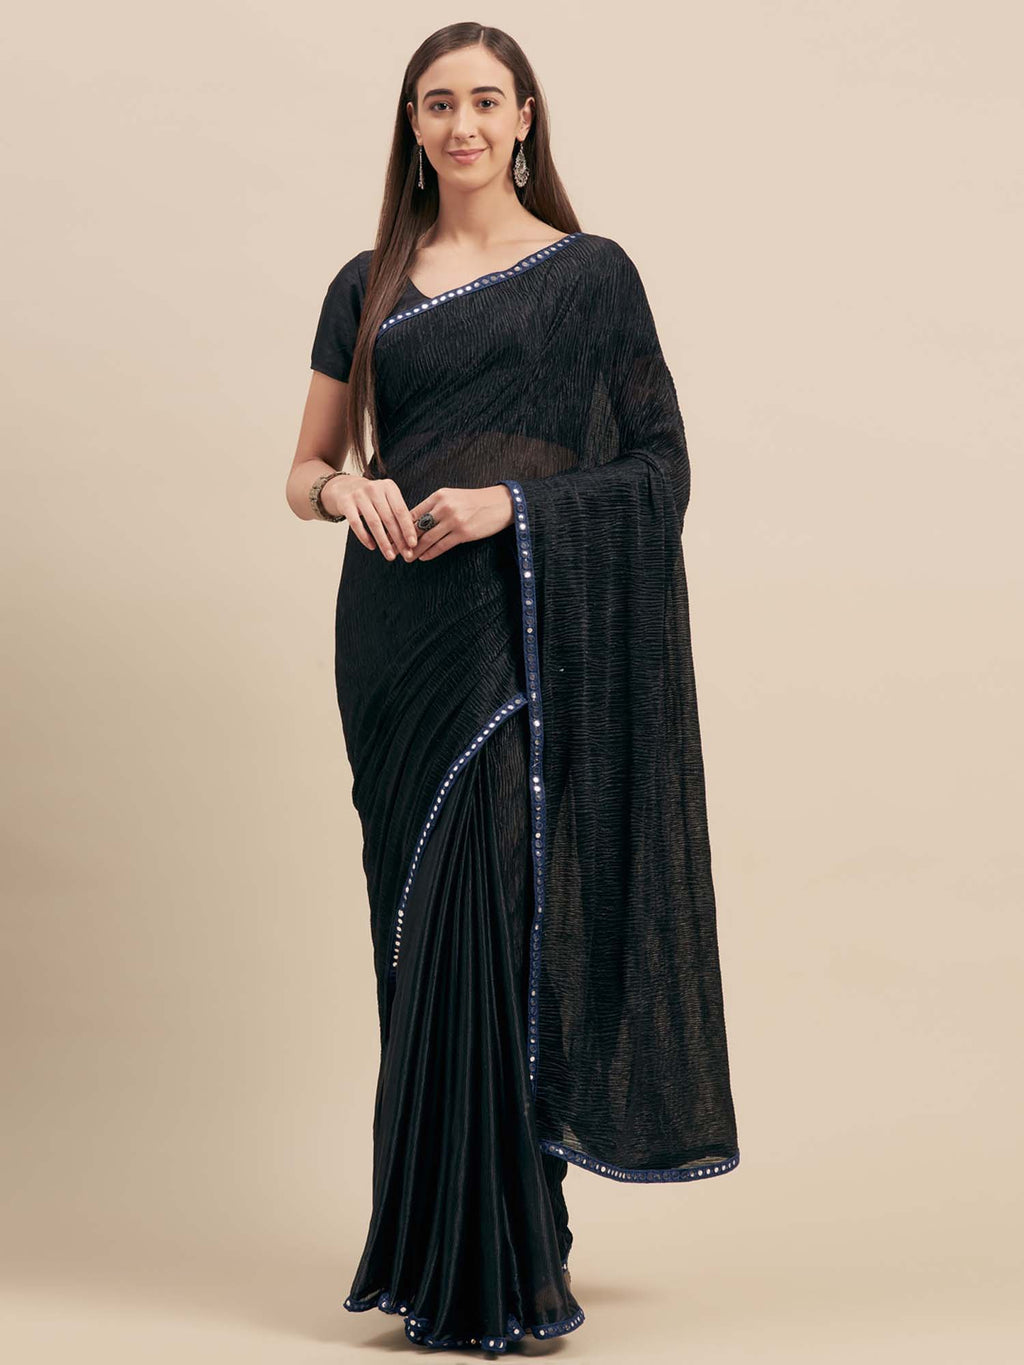 Black Crush Satin Half-Half Saree With Mirror Lace - Riviera Closet